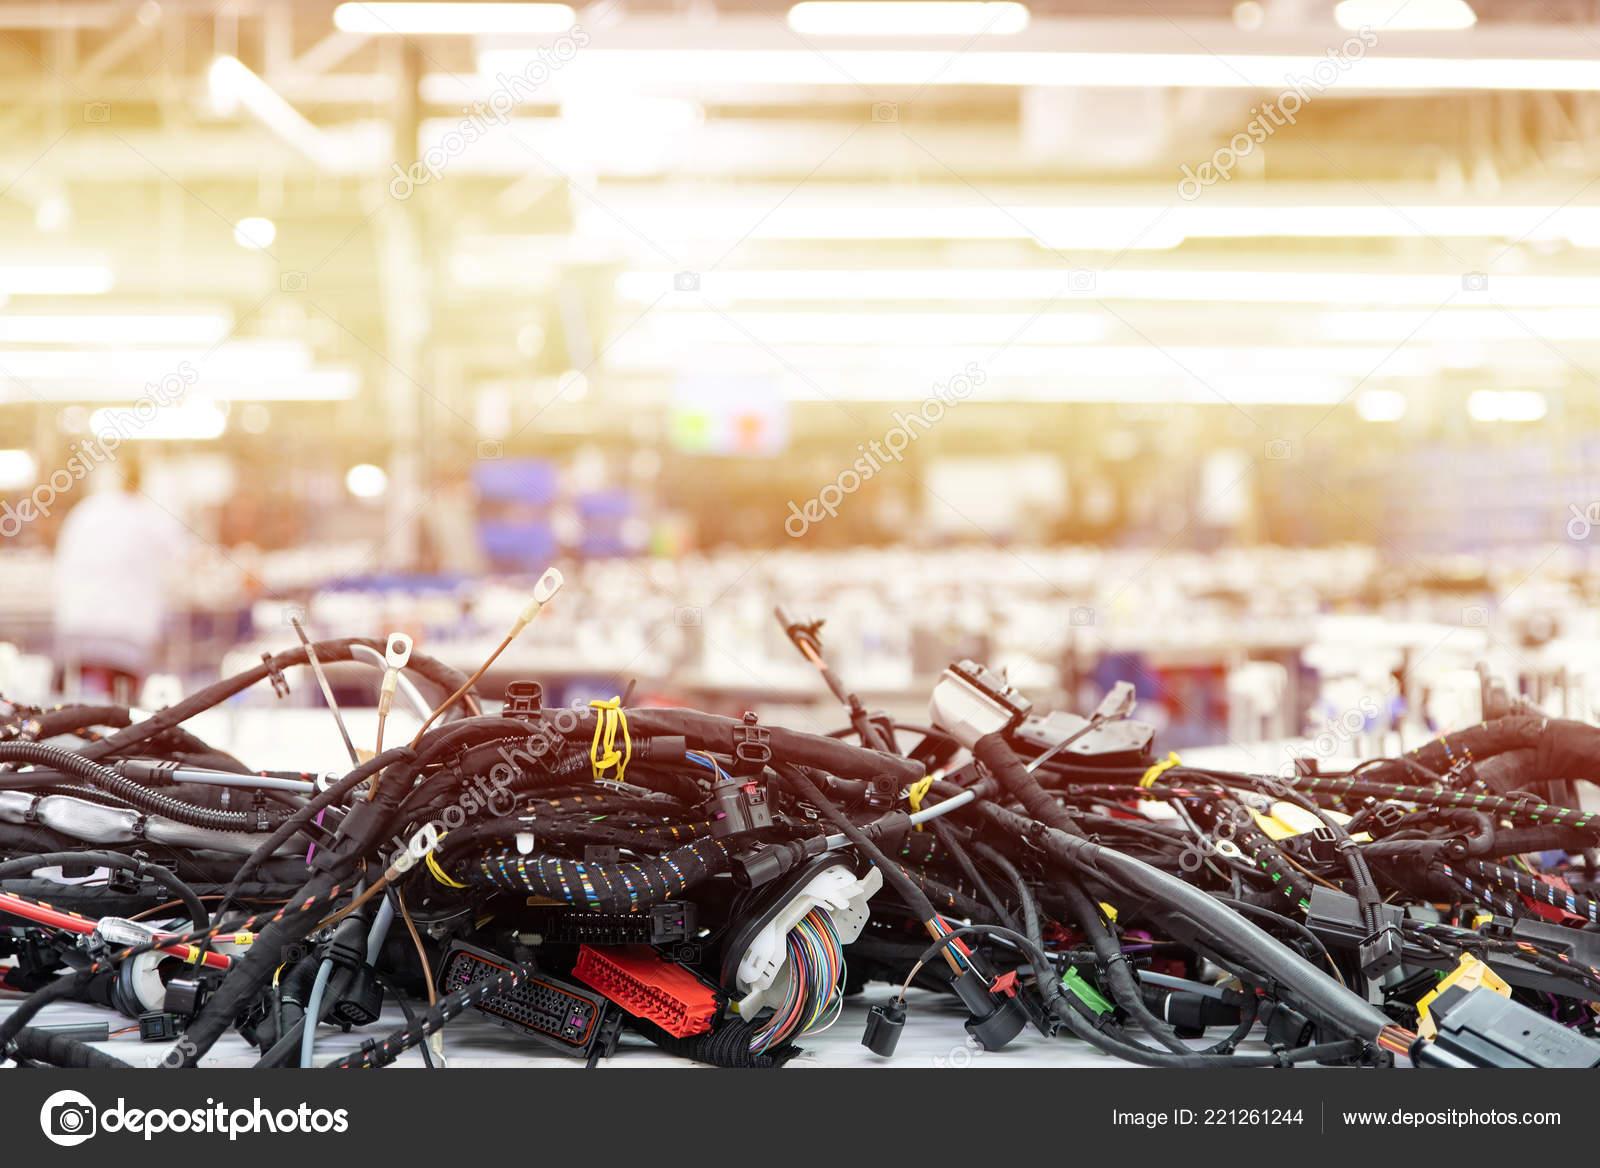 Manufacturing Wiring Harnesses Automotive Industry ... on wire ball, wire connector, wire sleeve, wire antenna, wire nut, wire holder, wire cap, wire leads, wire clothing, wire lamp,